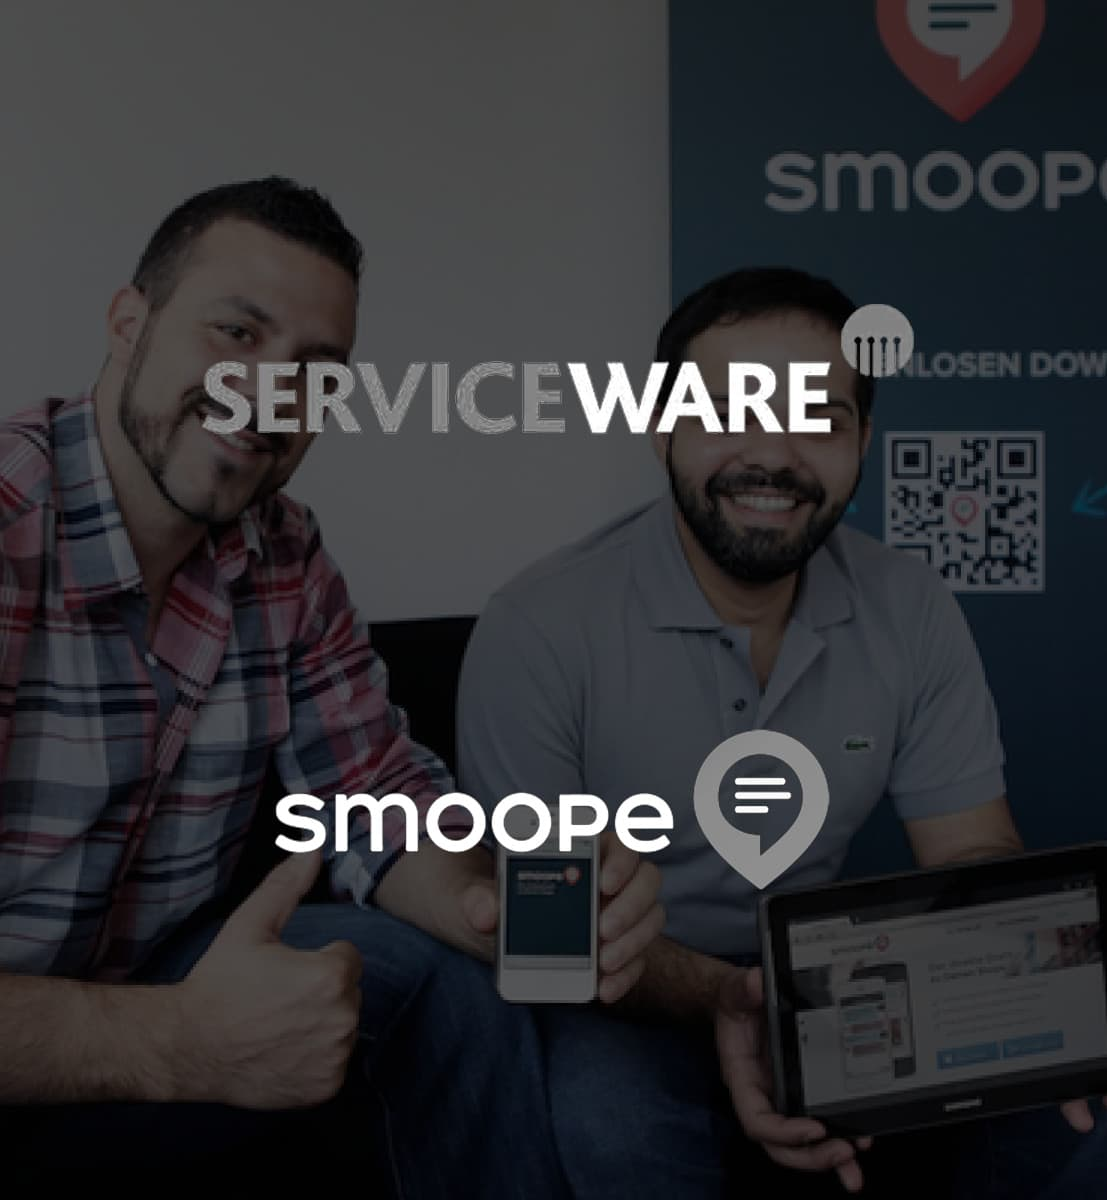 DEX international M&A and its German Globalscope partner Carlsquare advised Serviceware SE on the acquisition of Smoope